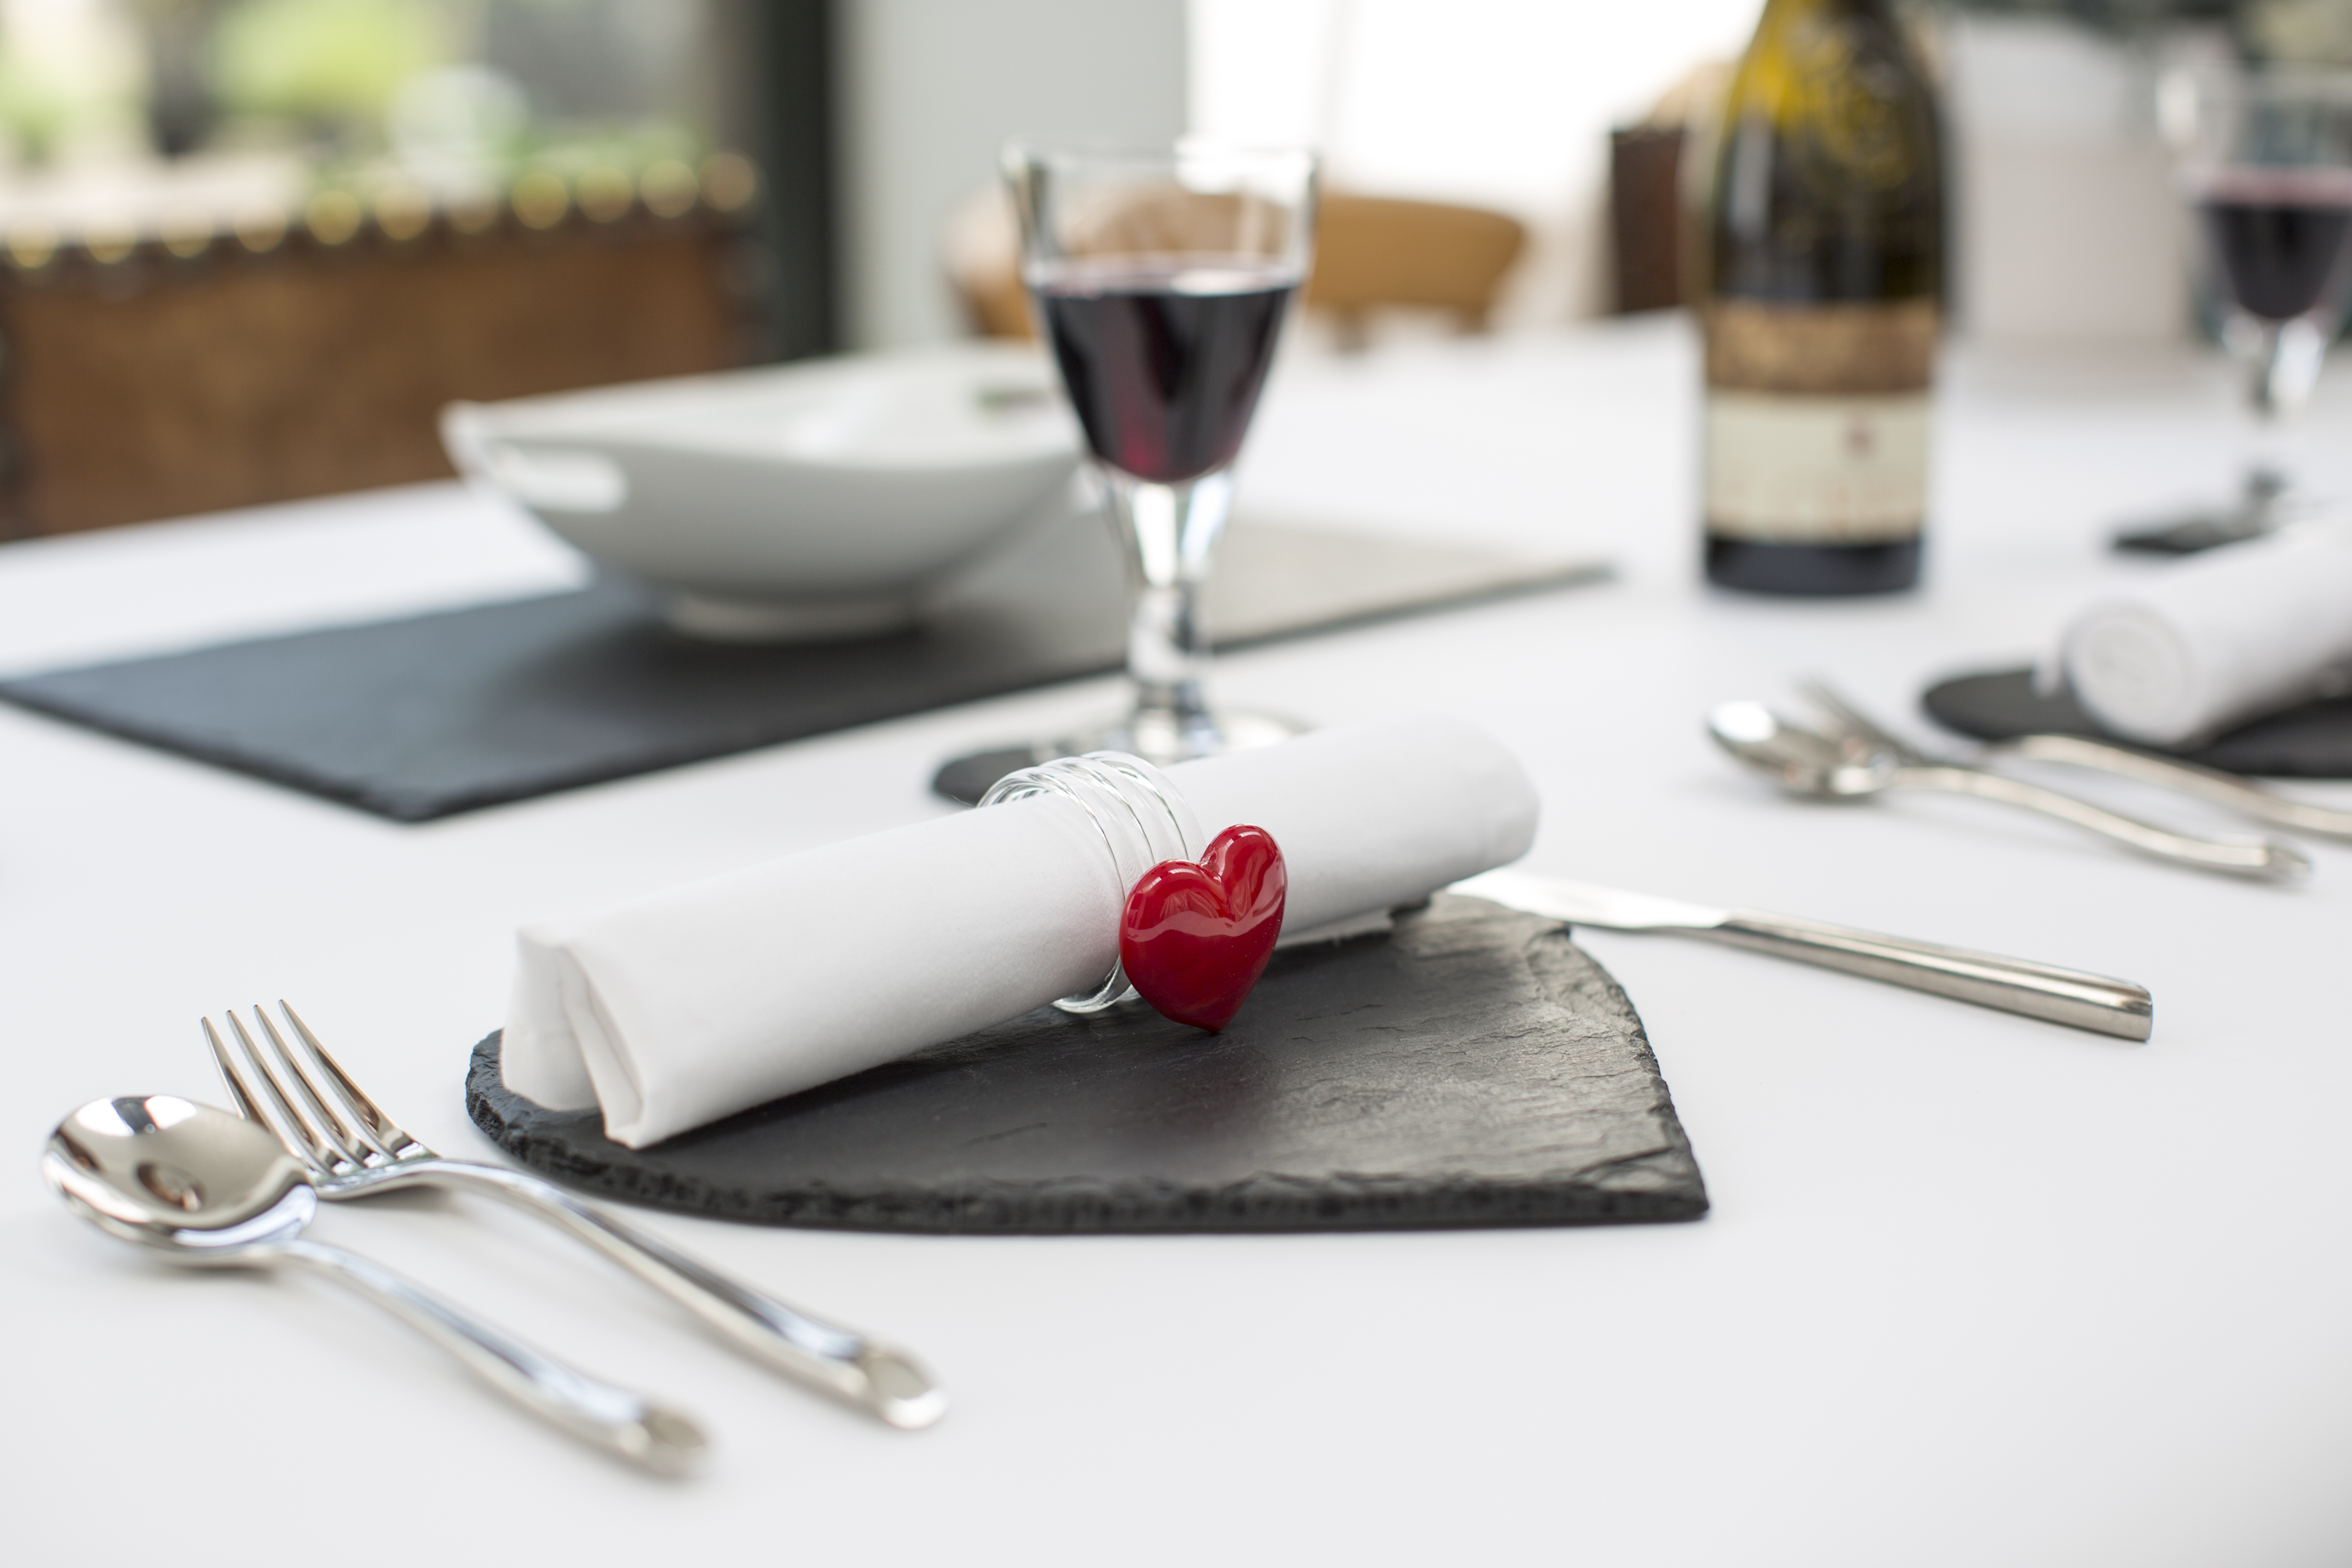 Why not add a Heart Shaped placemat?